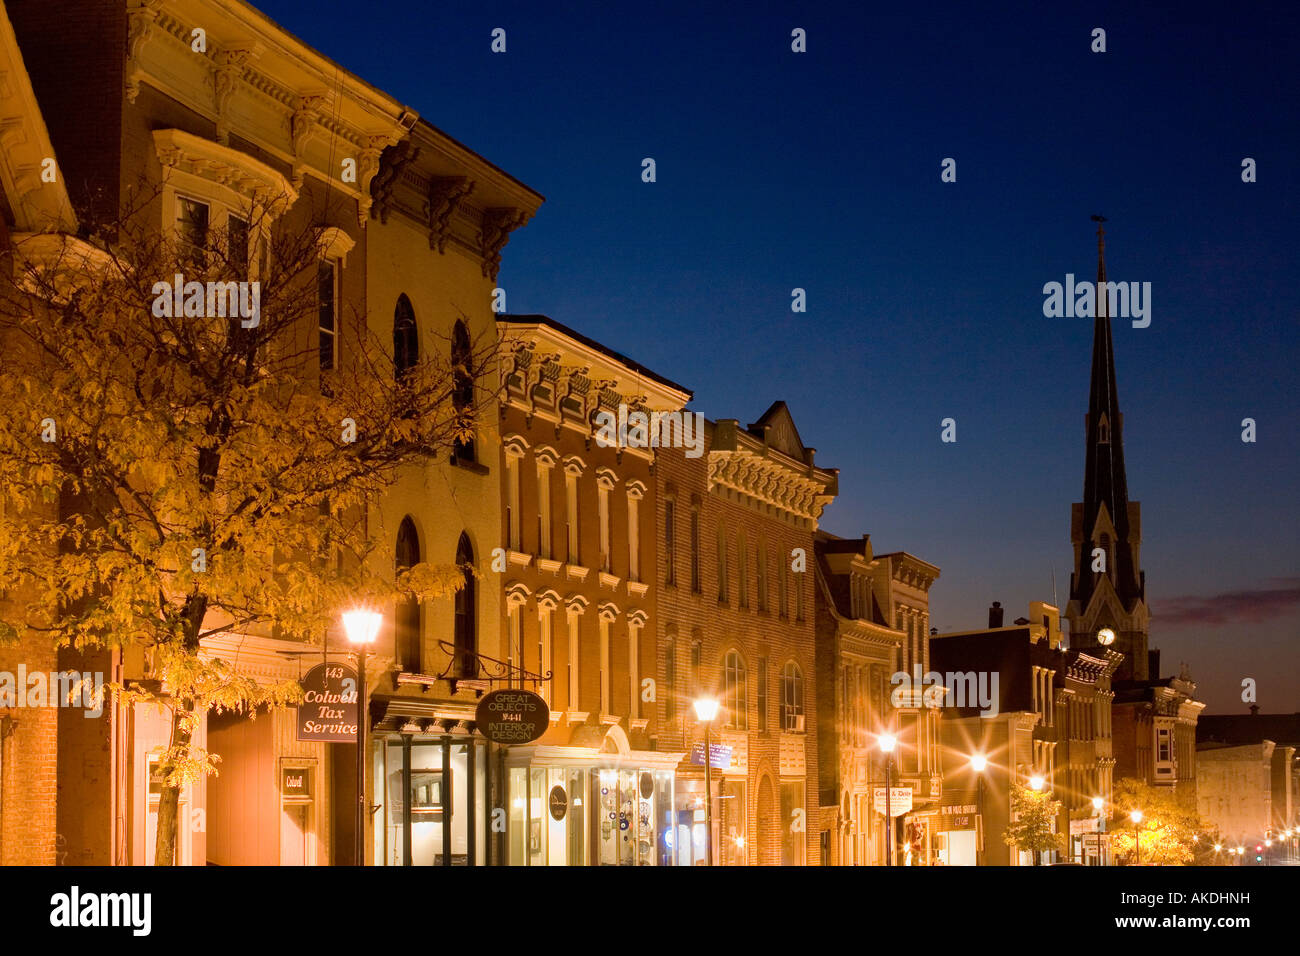 Warren Street Hudson New York - Stock Image